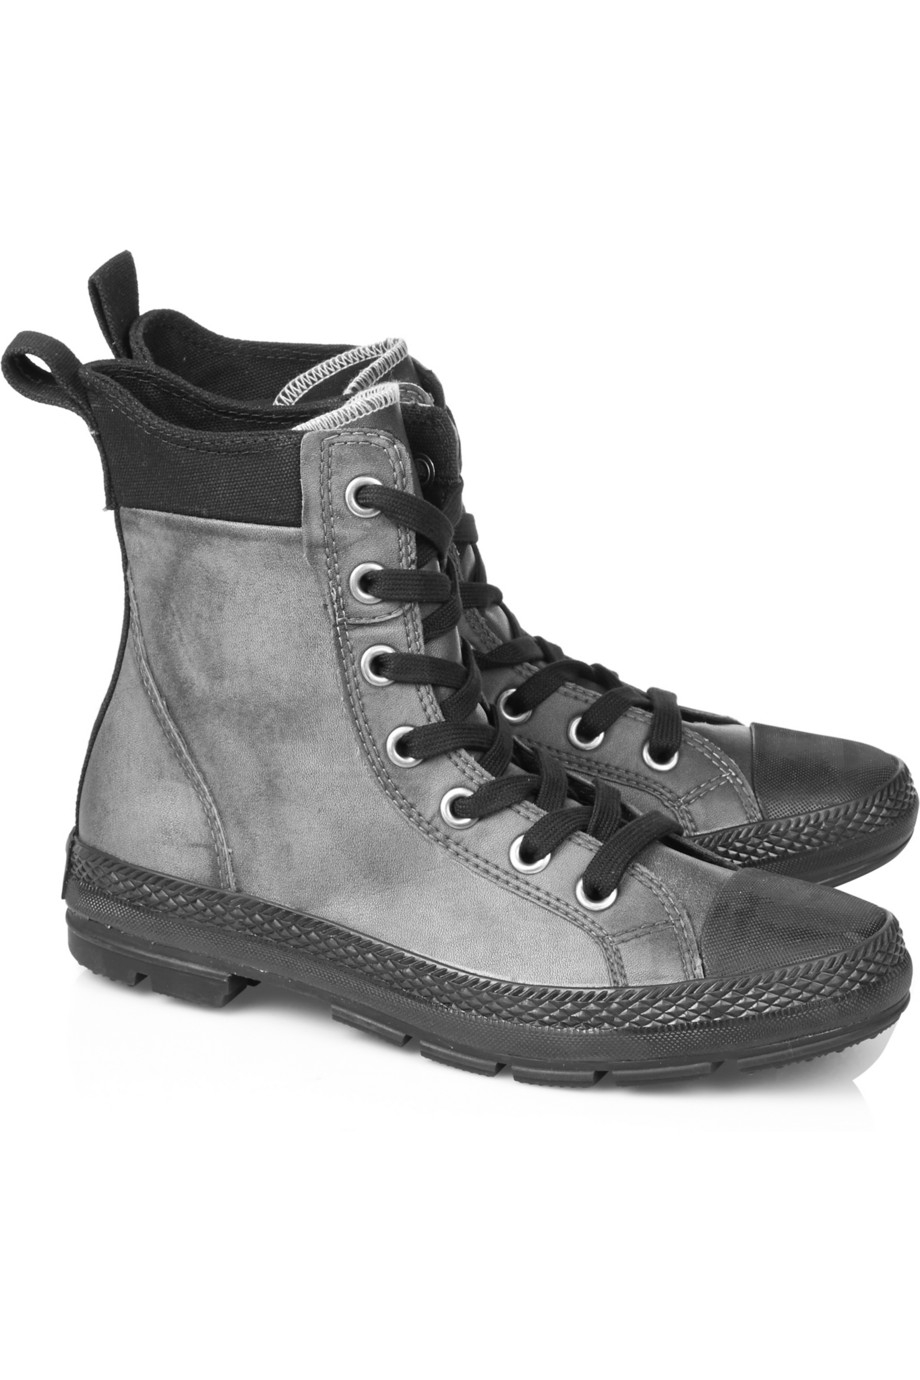 3b7a7a5e94a2 Converse Chuck Taylor Sargent Leather High-top Sneakers in Gray - Lyst